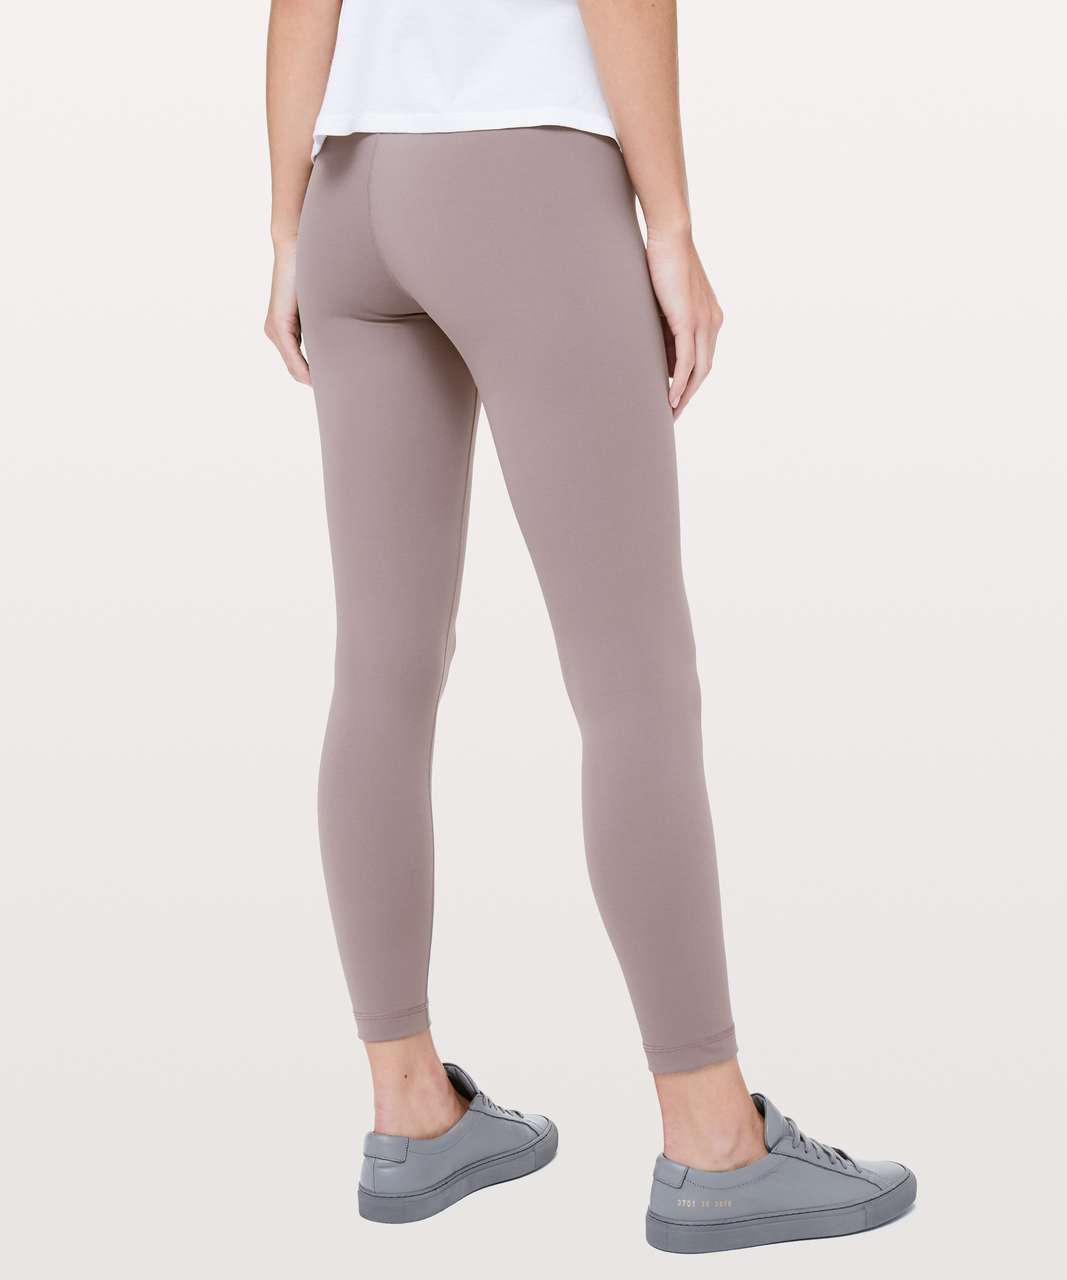 "Lululemon Wunder Under Hi-Rise 7/8 Tight *25"" - Lunar Rock"